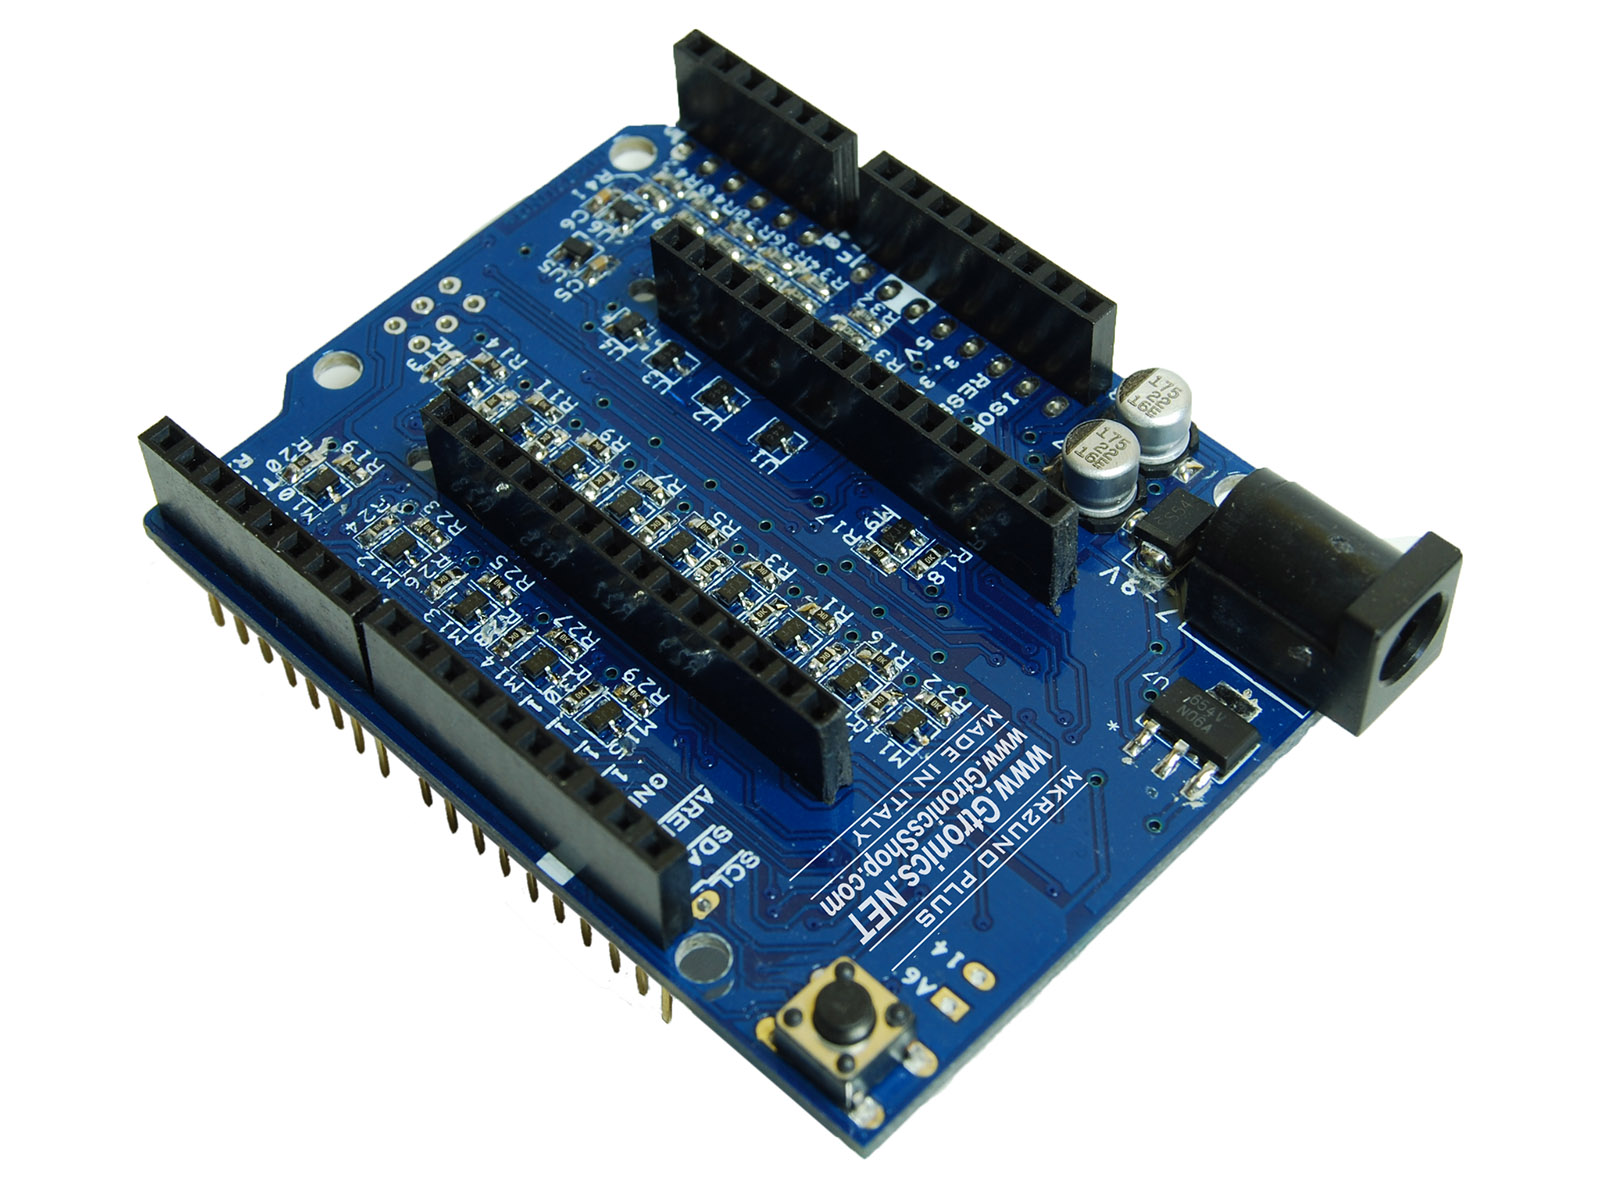 MKR2UNO Plus board